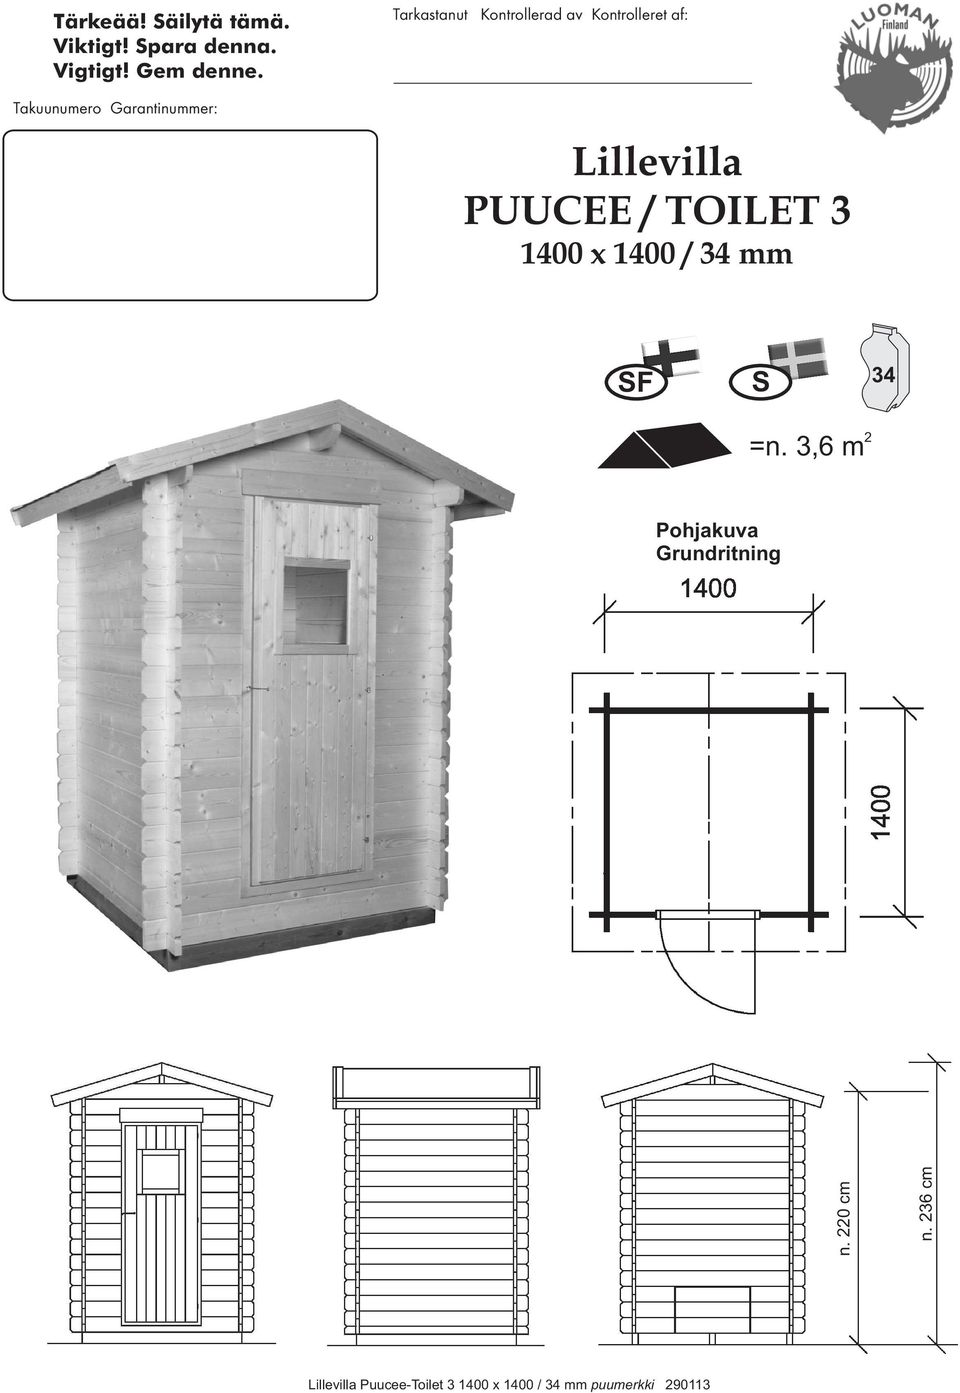 Lillevilla PUUCEE / TOILET 3 1400 x 1400 / 34 mm SF S 34 =n.